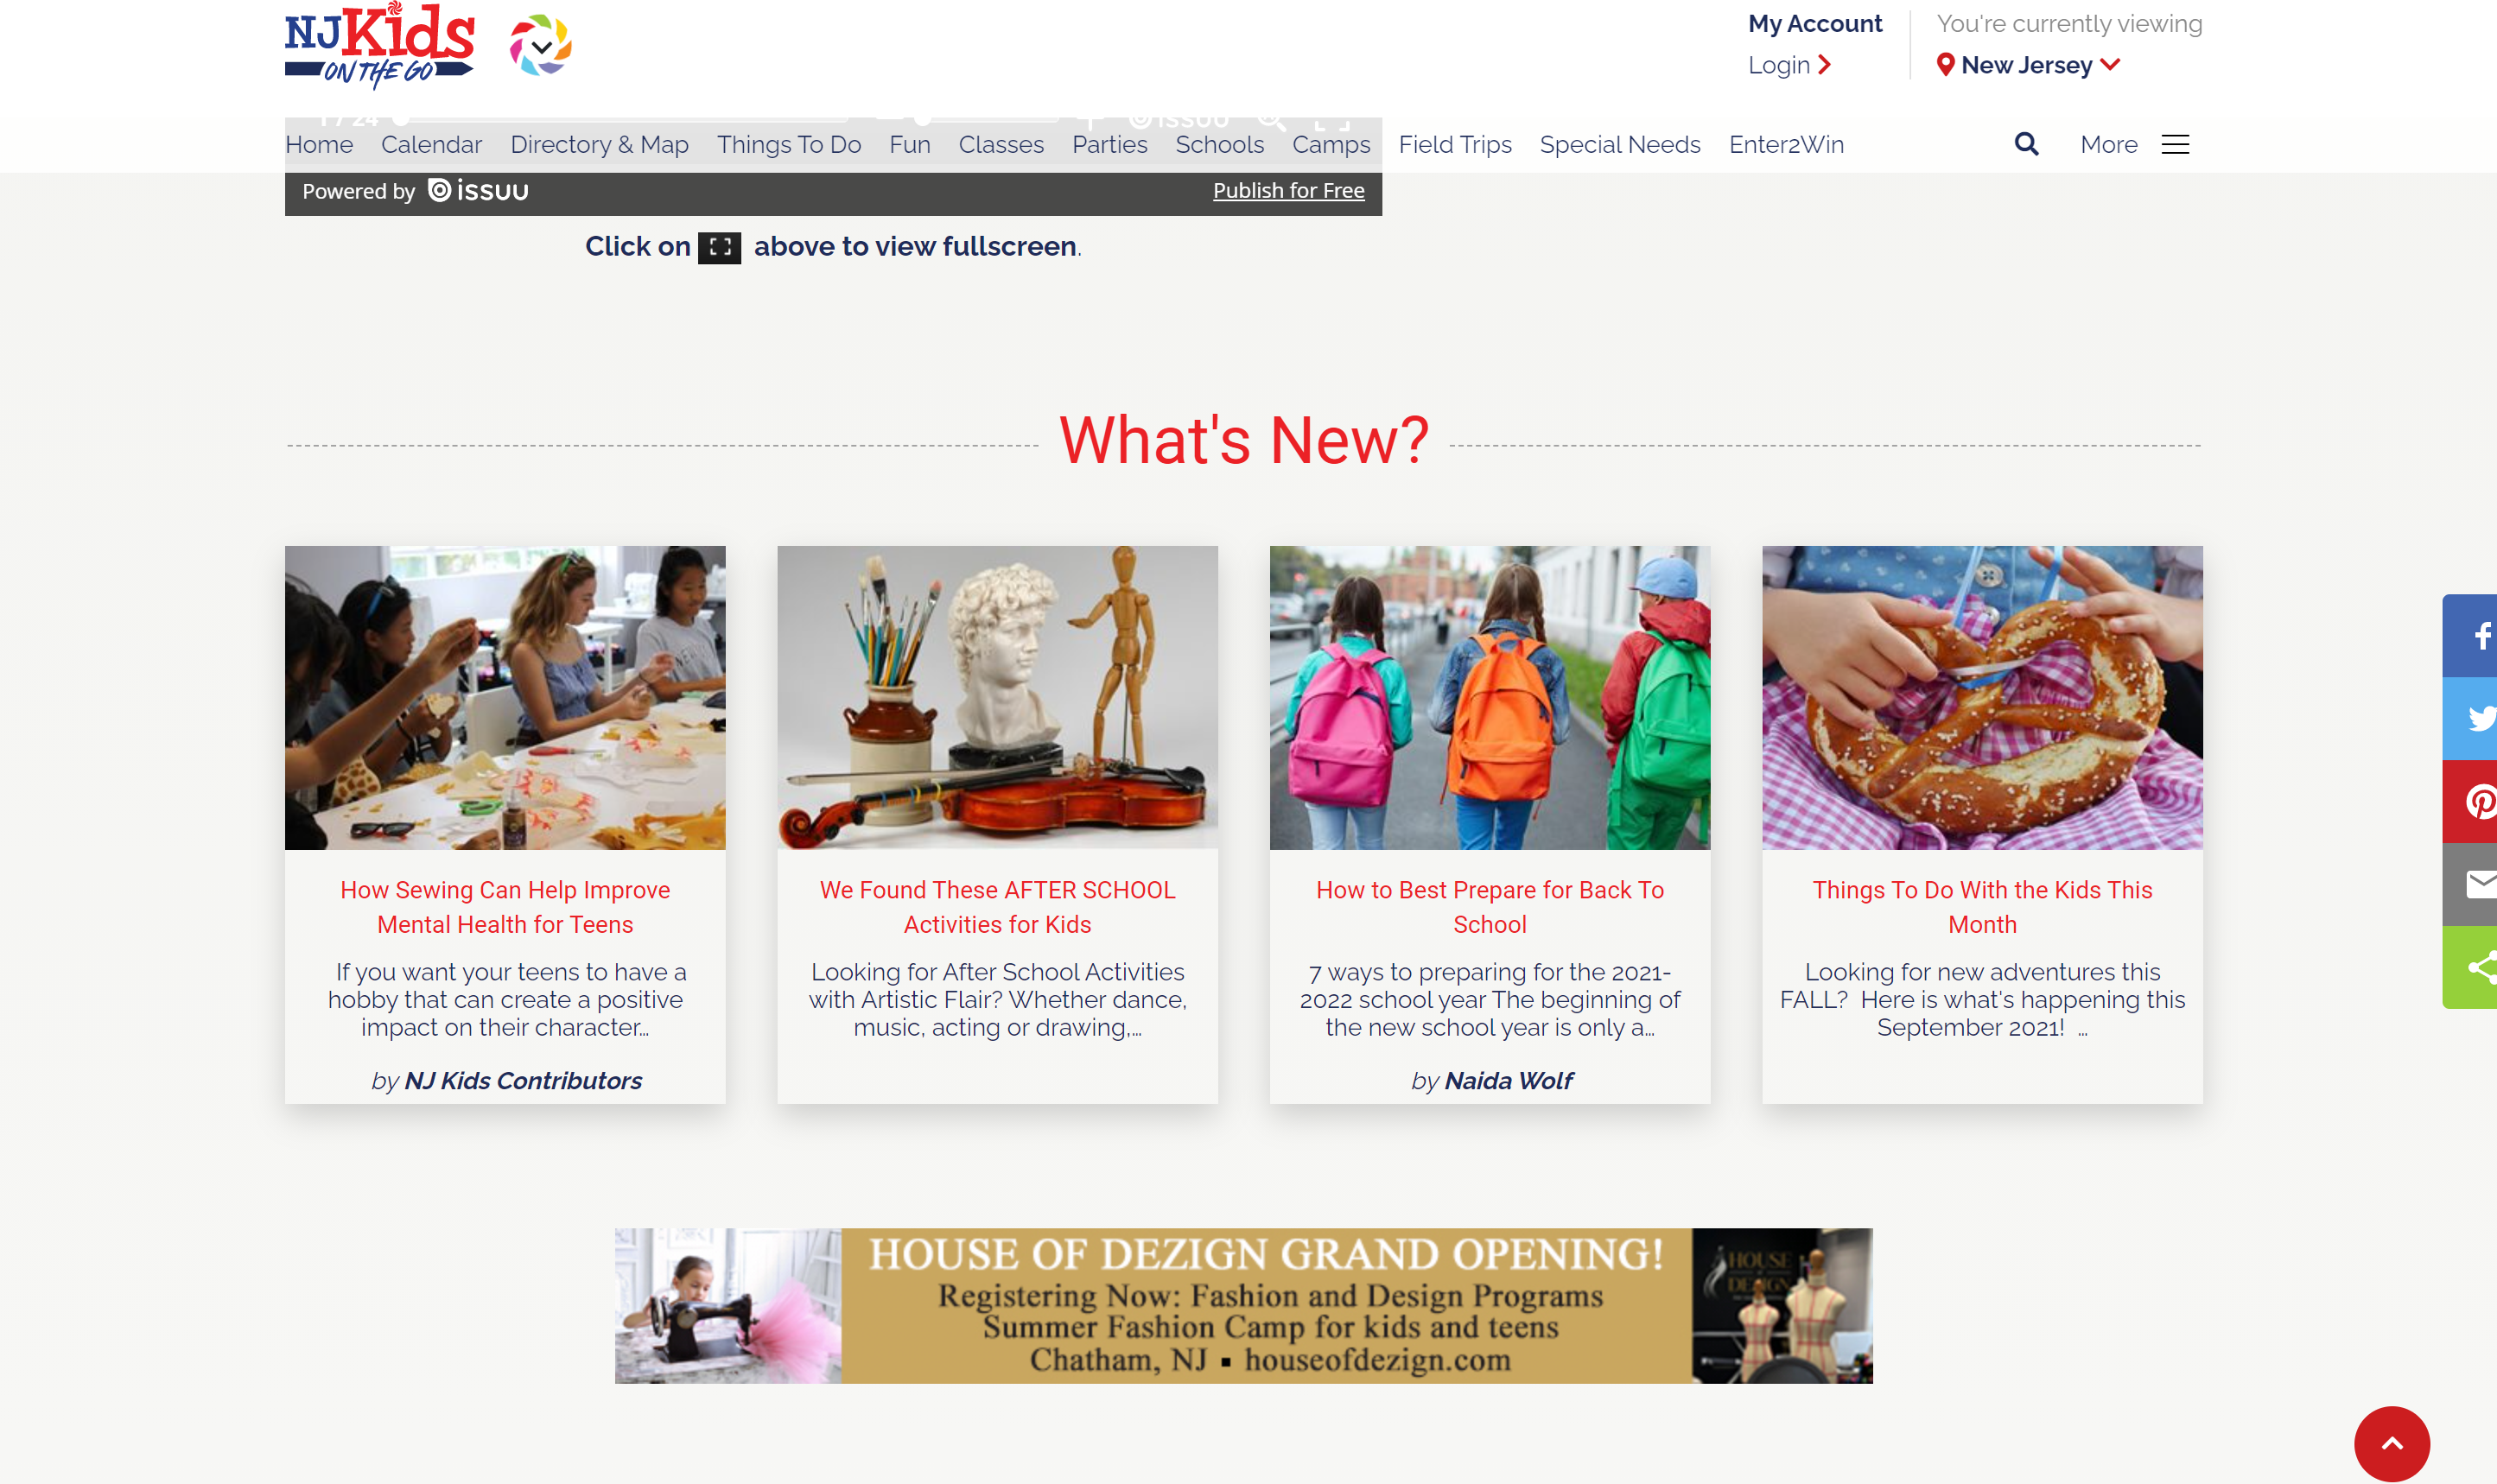 Keeping New Jersey Kids busy with NJ Kids online: Agility delivers an intuitive CMS for a busy editors team